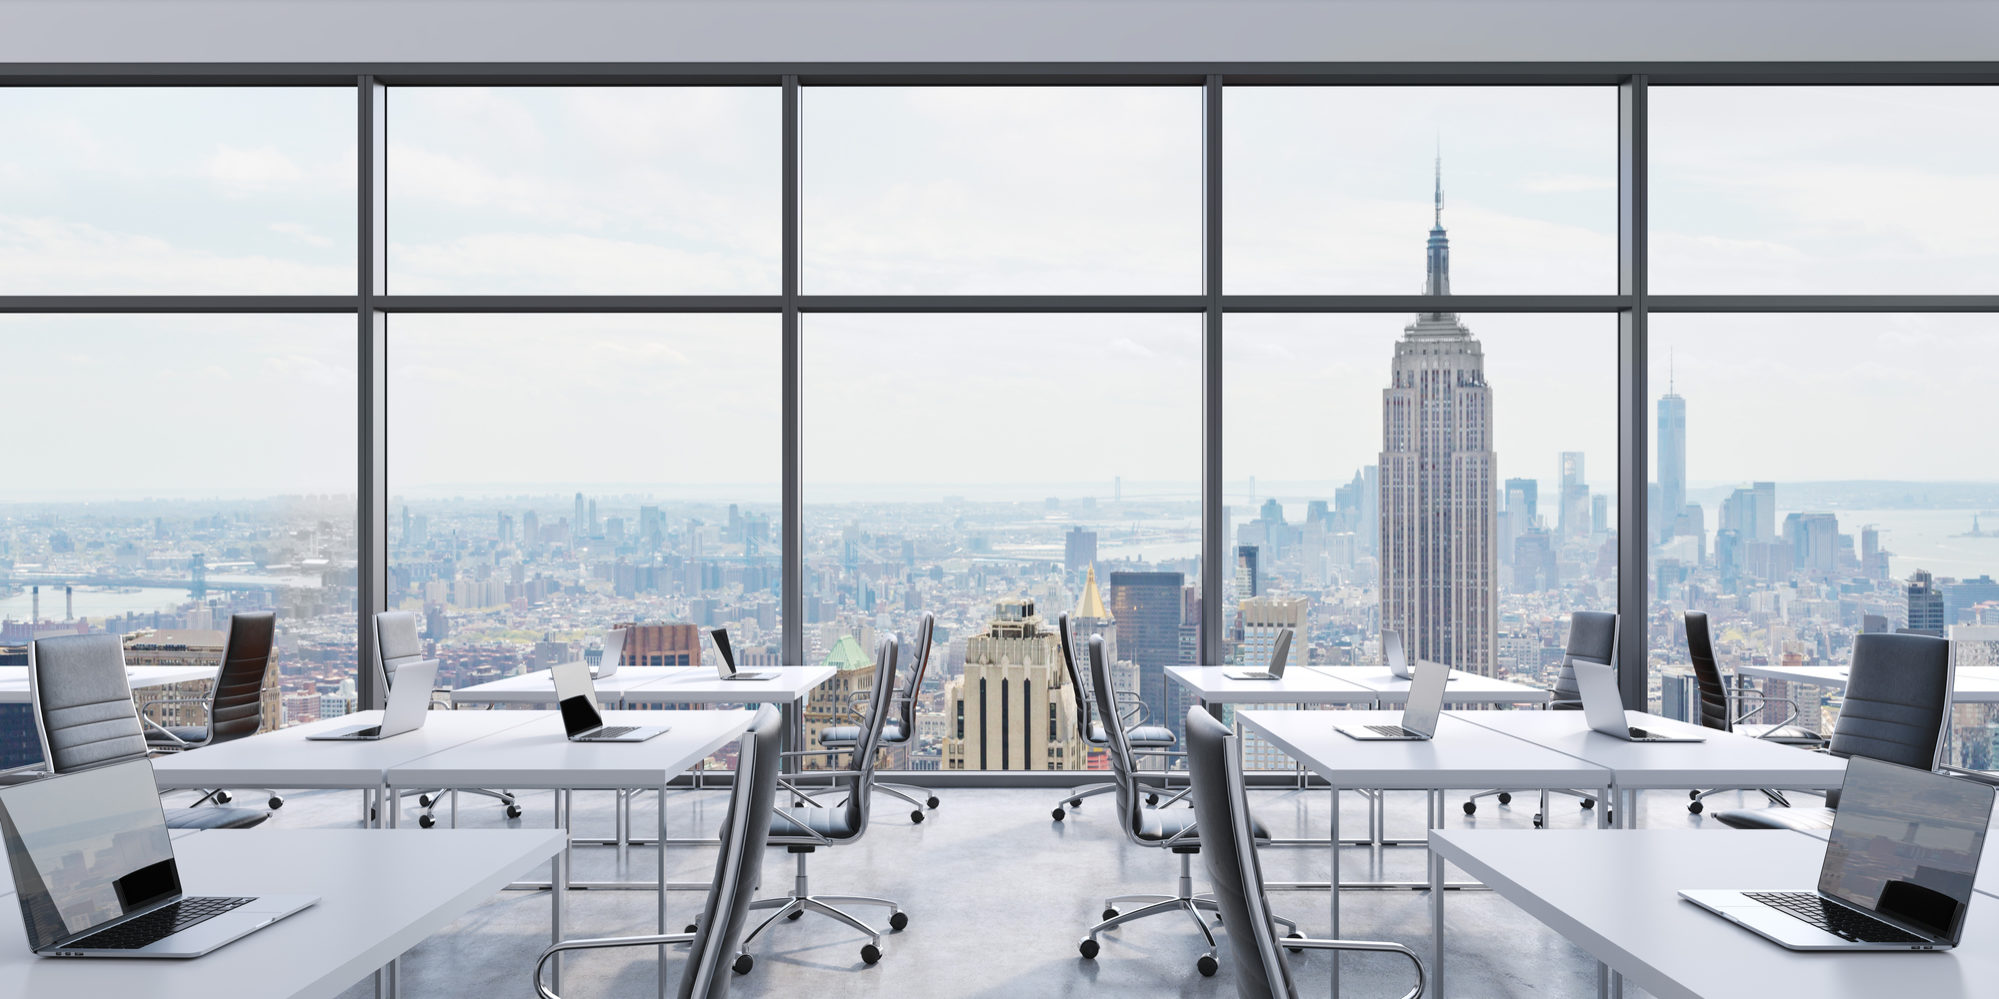 Workplaces in a modern panoramic office, New York city view from the windows. Open space. White tables and black leather chairs. A concept of financial consulting services. 3D rendering.